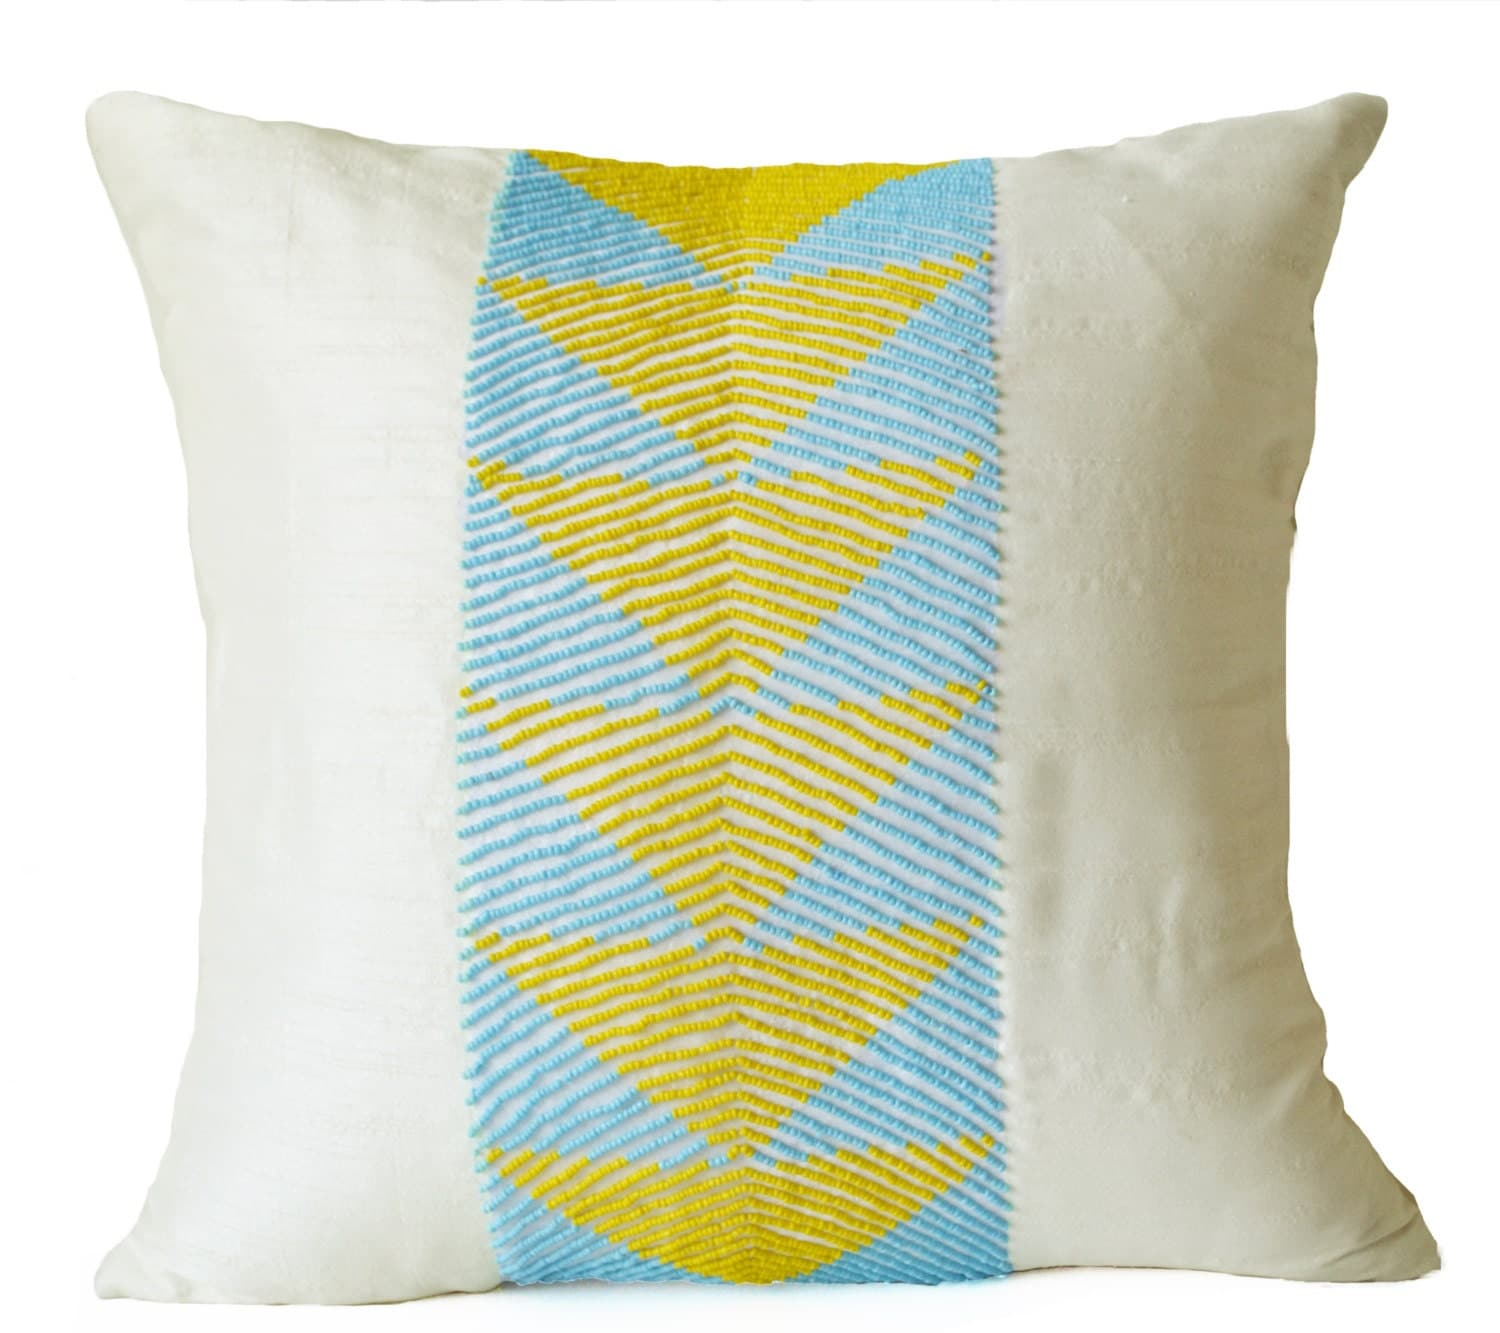 Decorative Pillow Covers Throw Pillows Yellow Blue Geometric